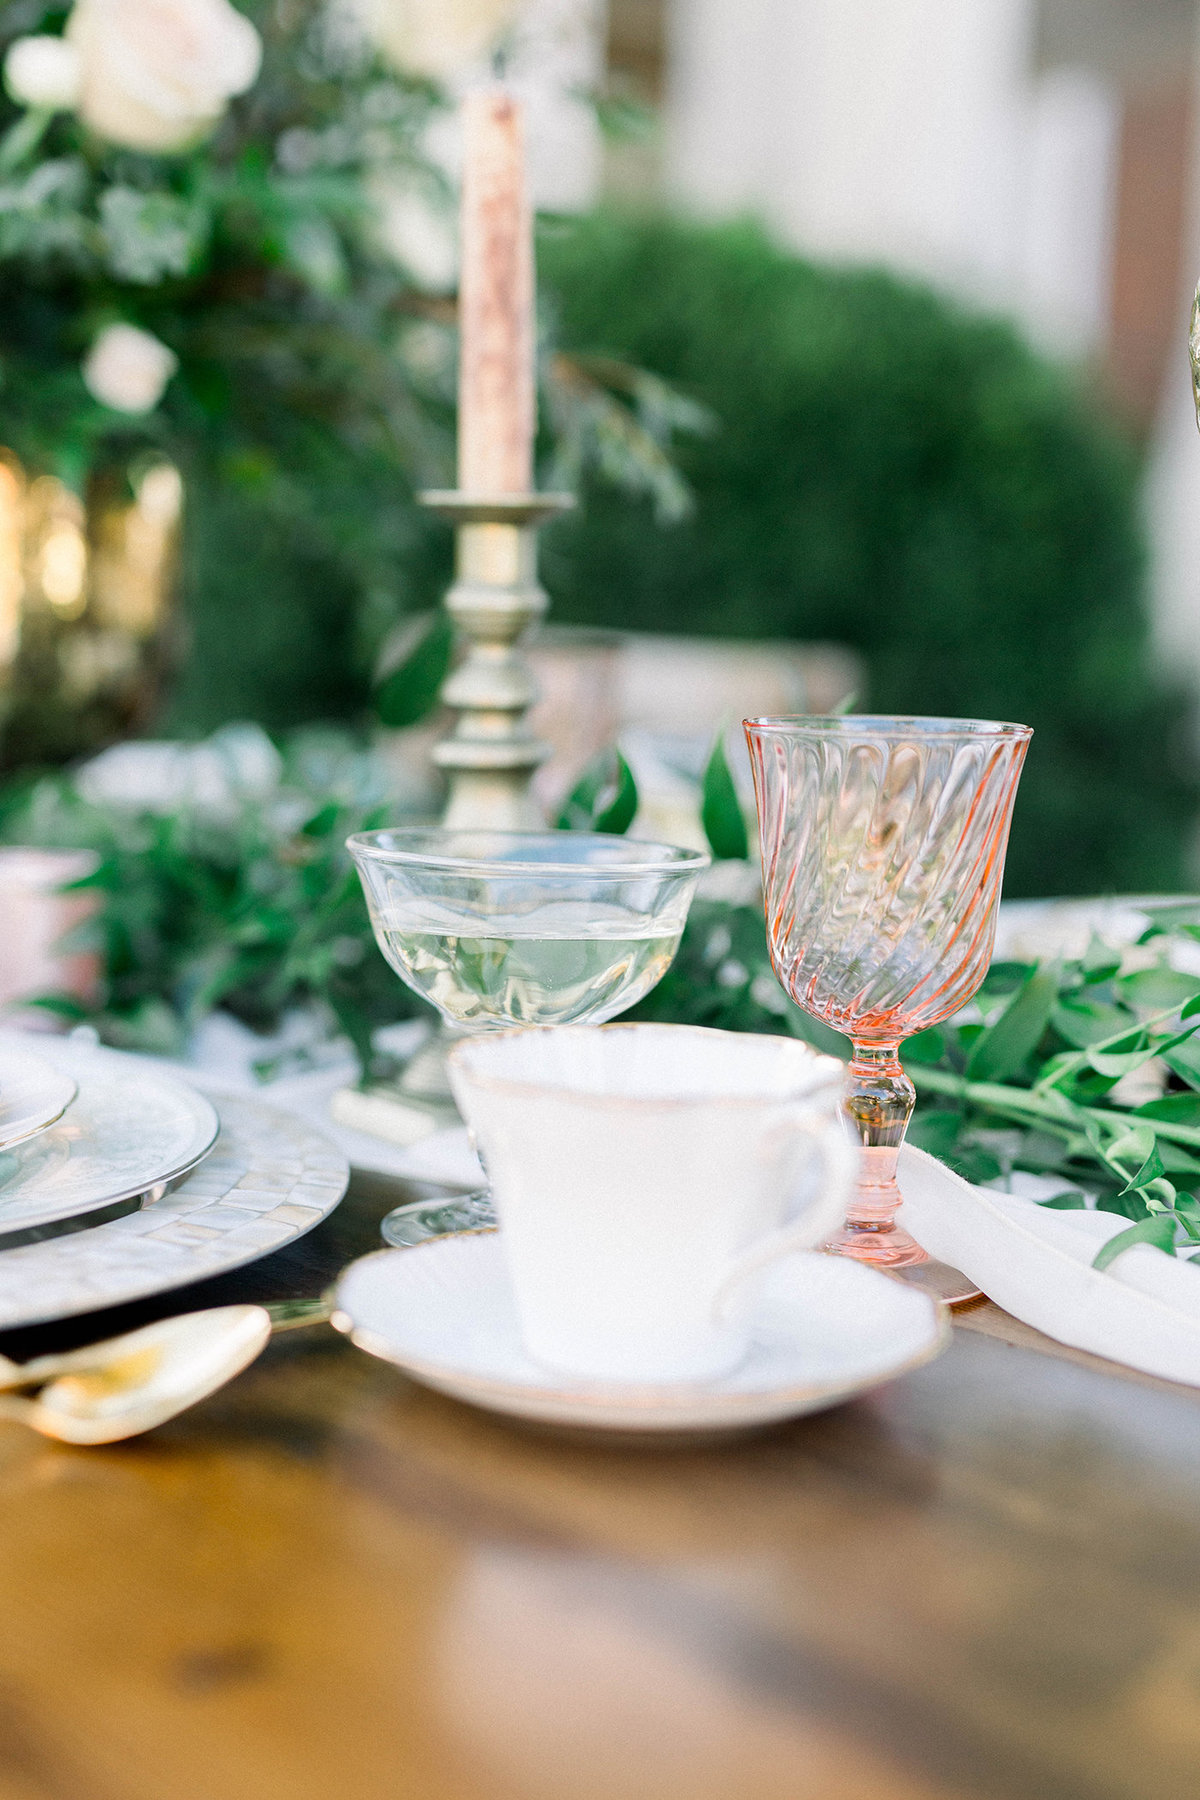 Cedarmont Nashville Editorial - Sarah Sunstrom Photography - Fine Art Wedding Photographer - 29